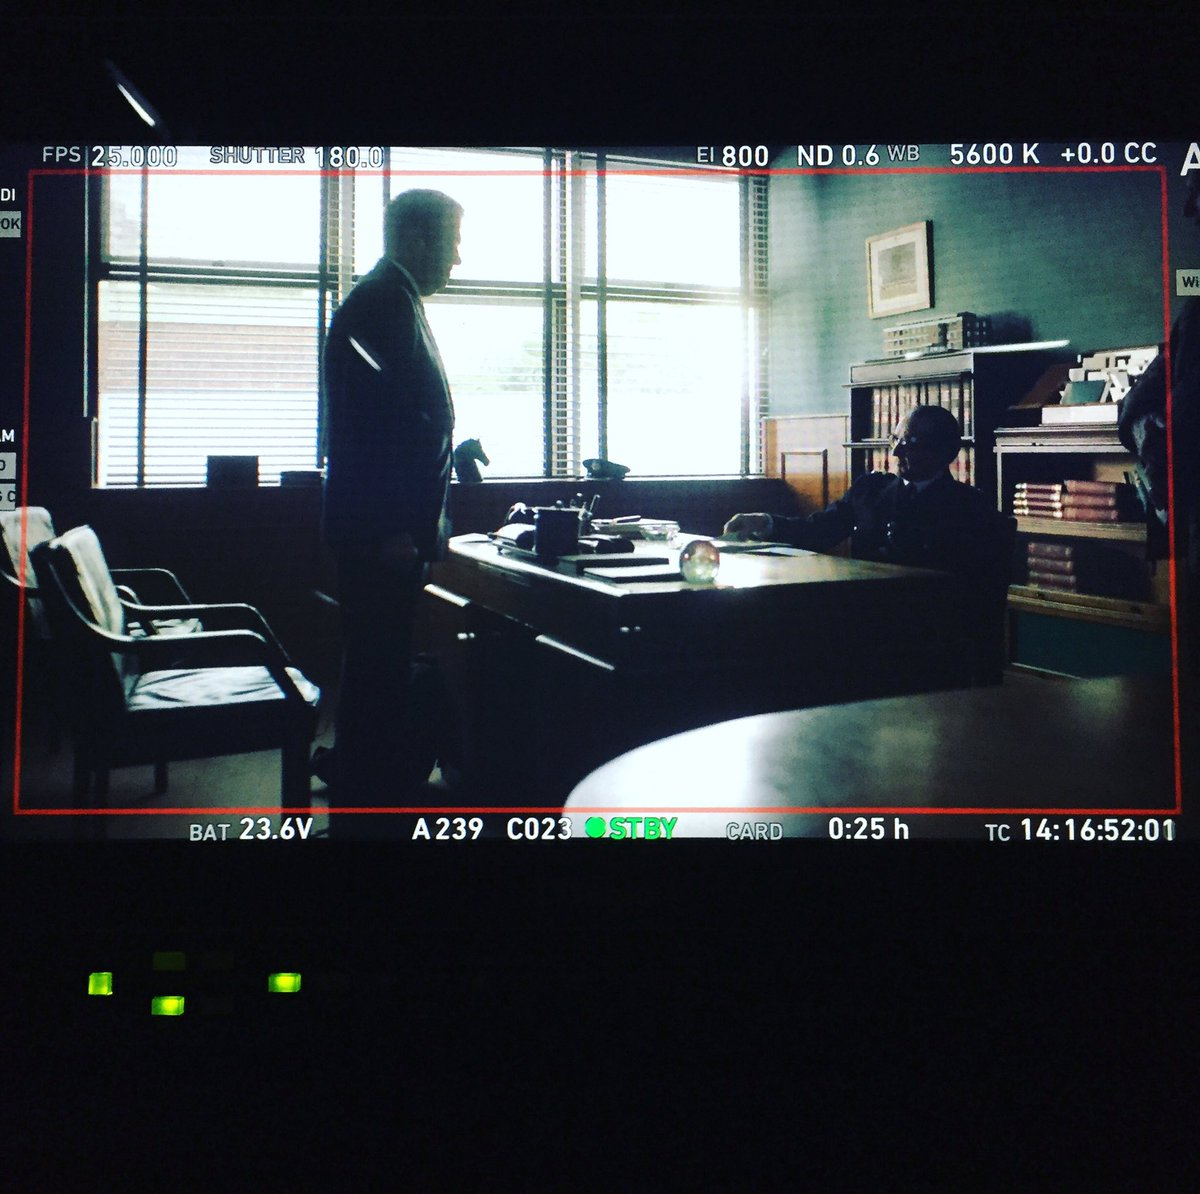 #179of196 Bright future. #Endeavour #productiondesign<br>http://pic.twitter.com/SnudaGuTDm